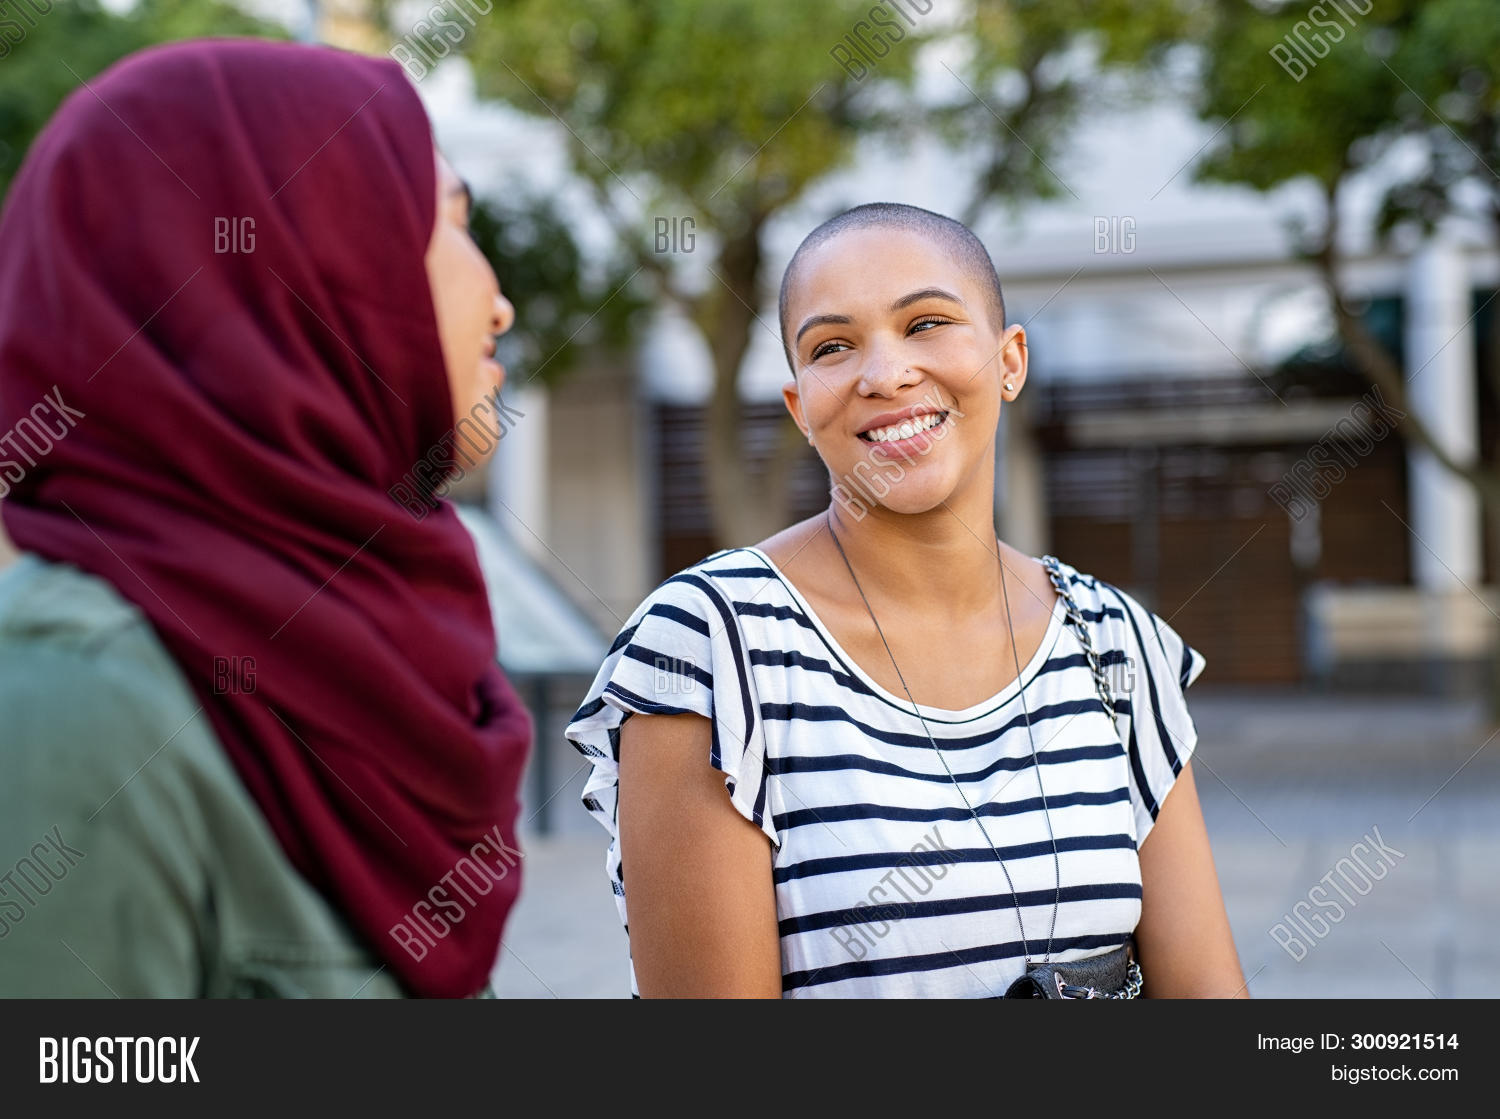 african,american,arabic,arabic woman,bald,bonding,carefree,chatting,city,communication,conversation,cultural,diversity,enjoy,friend,friends,friends having fun,friendship,fun,girl,happy,hijab,hijab girl,identity,integration,interaction,interracial,islam,islamic,islamic woman,lifestyle,meeting,multi ethnic group,multicultural,multiethnic,muslim,muslim woman,outdoor,park,people,real,religion,smiling,street,stylish woman,together,toothy smile,urban,variation,young